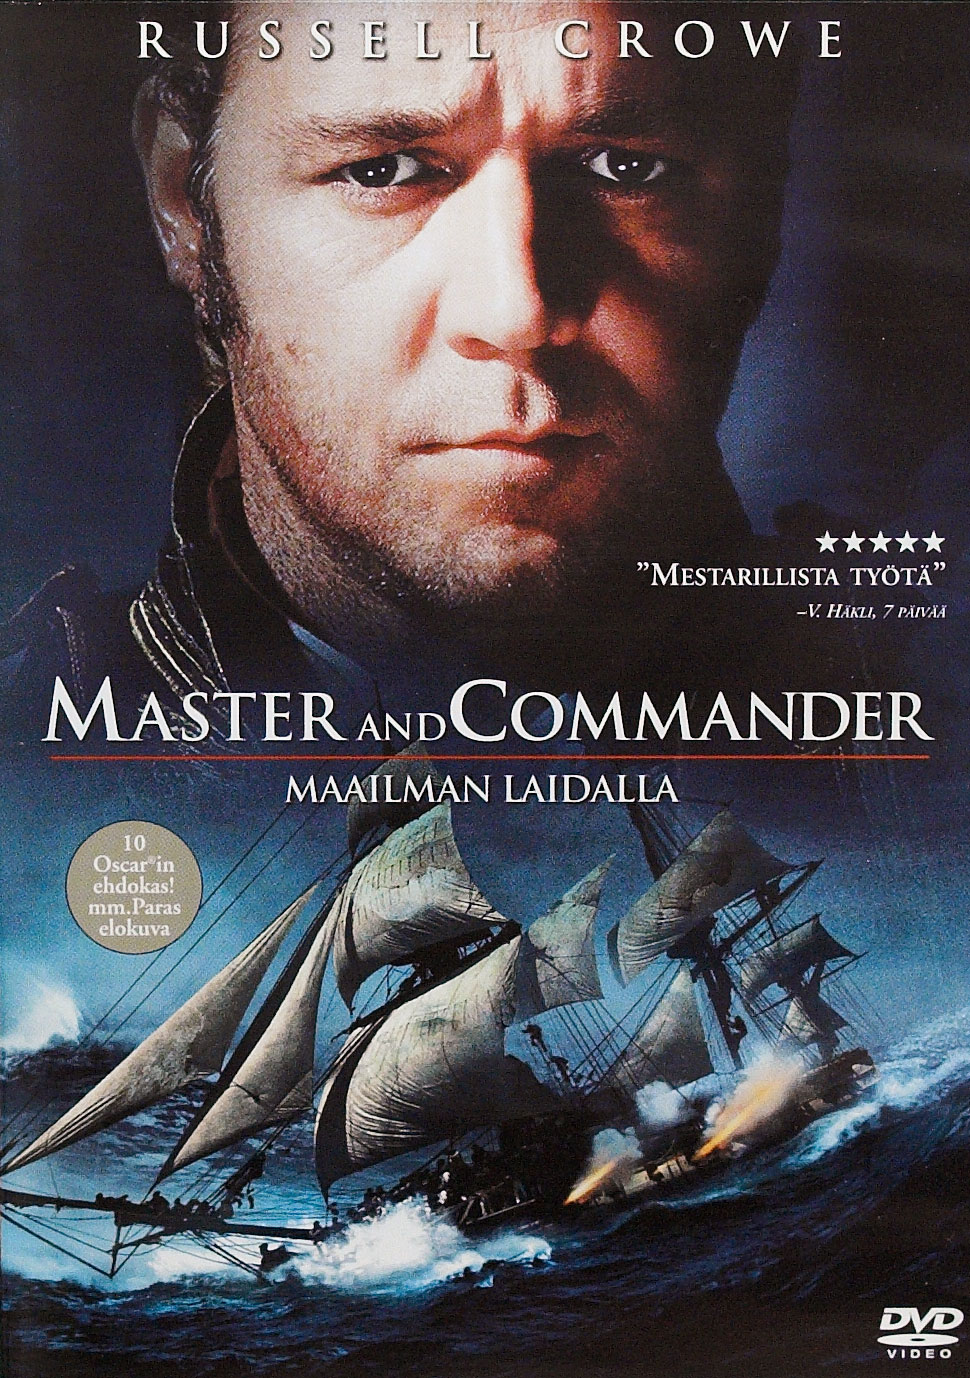 Master and Commander: Maailman laidalla – Wikipedia